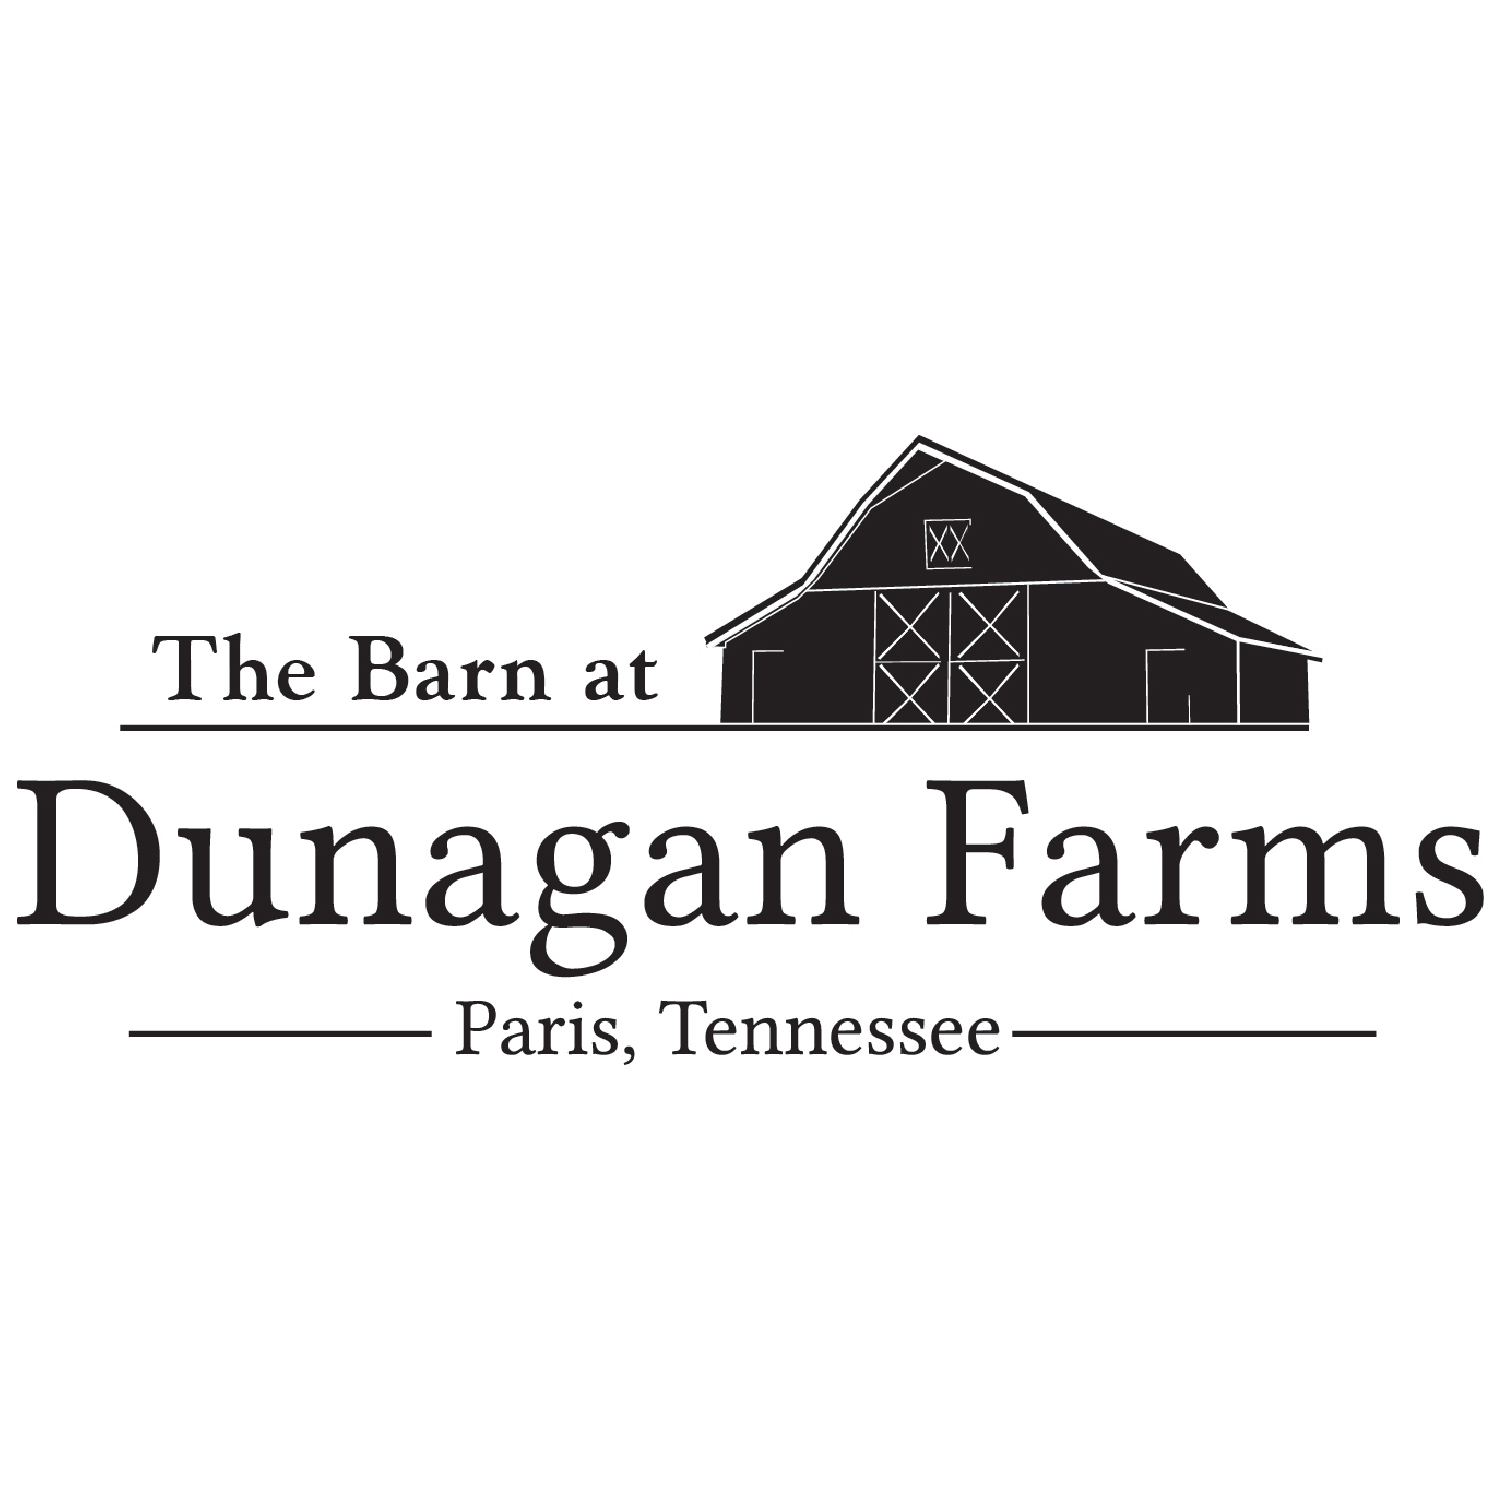 Dunagan Farms.jpg